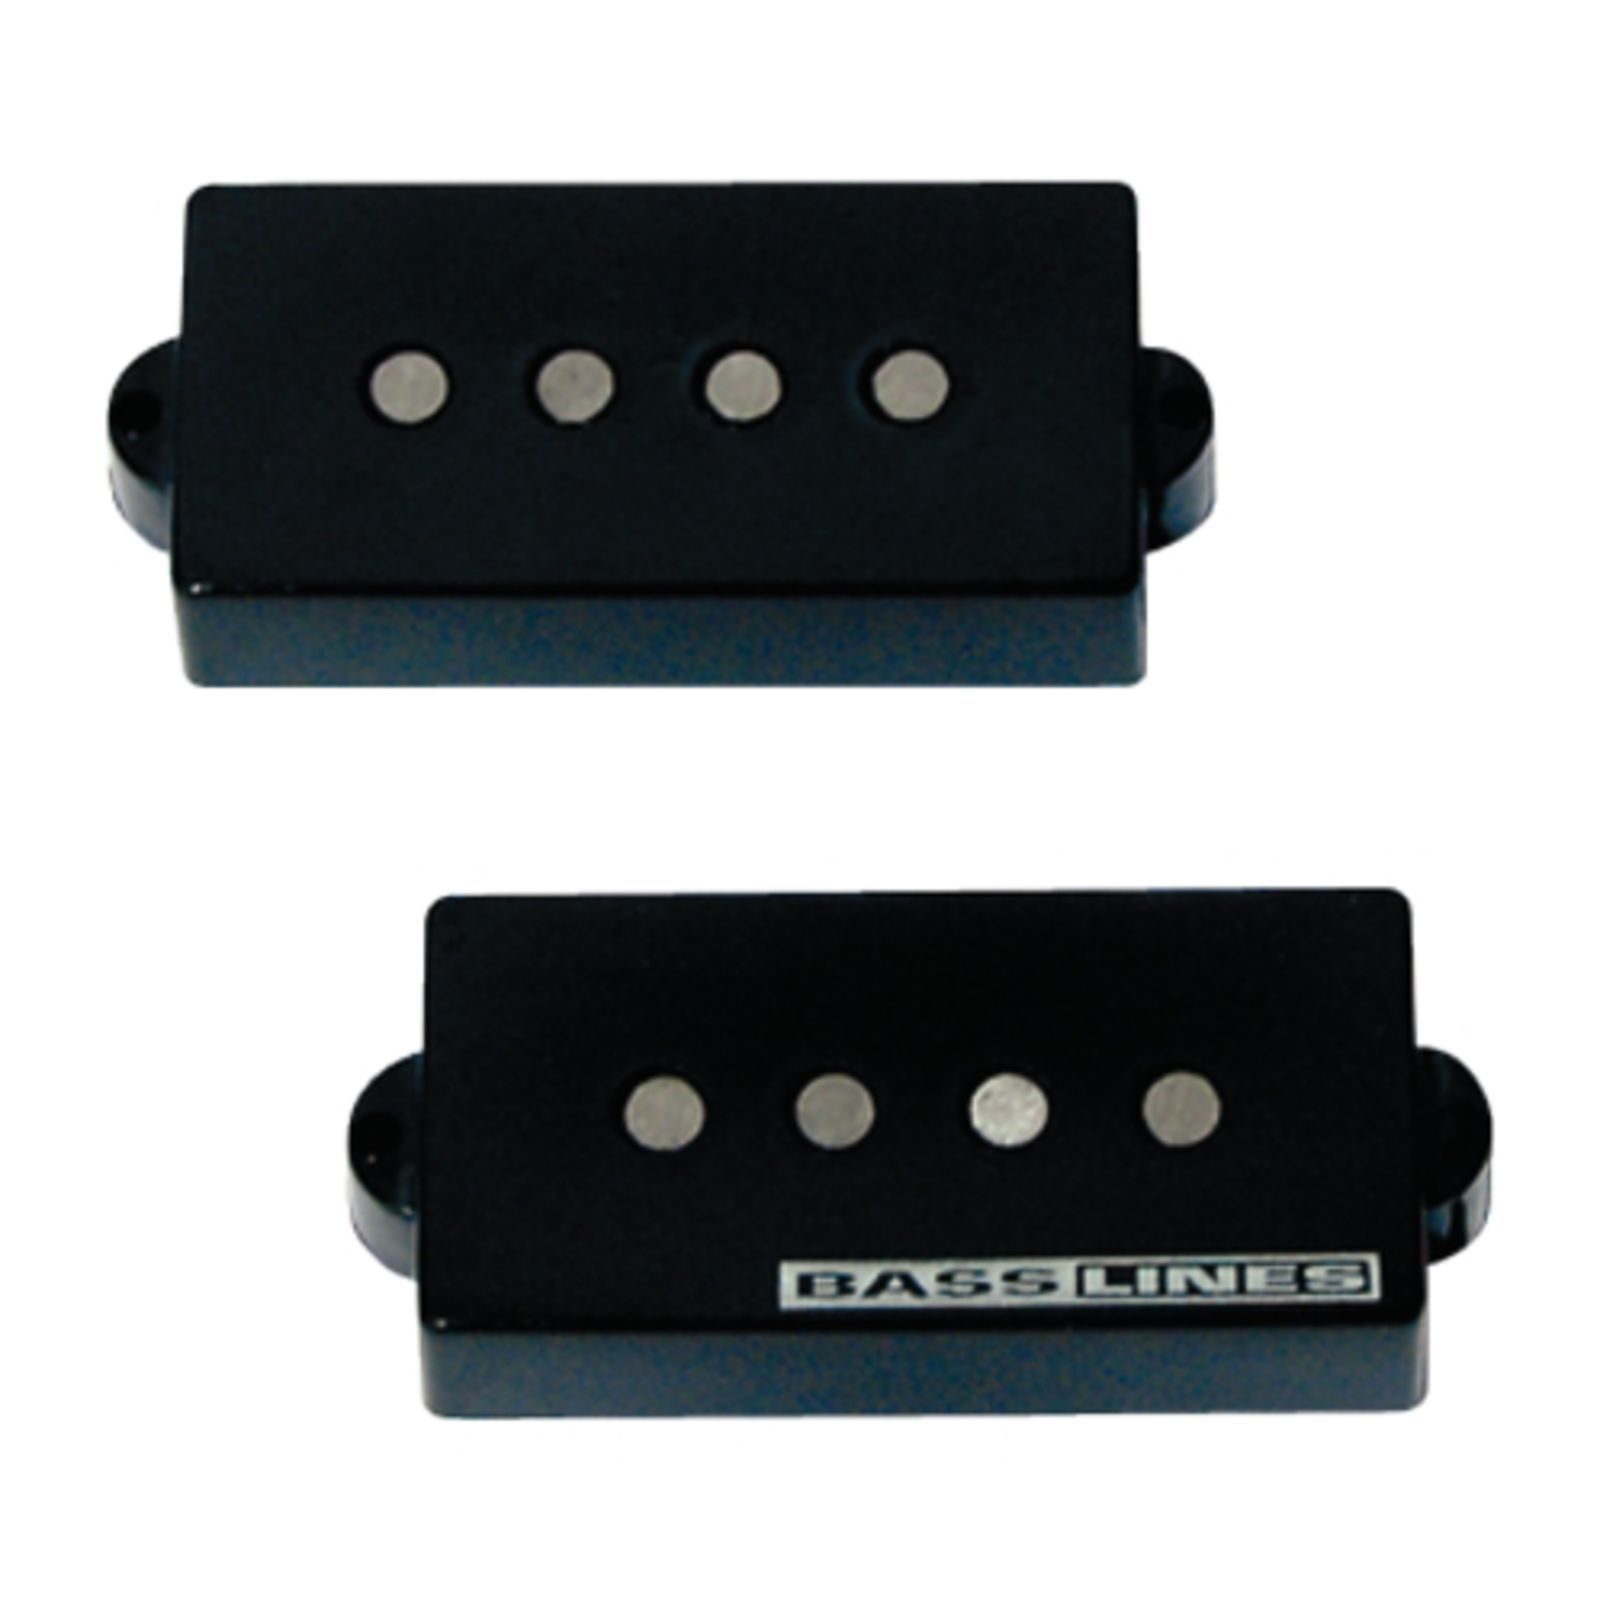 Seymour Duncan SSPB-2 Hot P-Bass black 2-phase Produktbillede